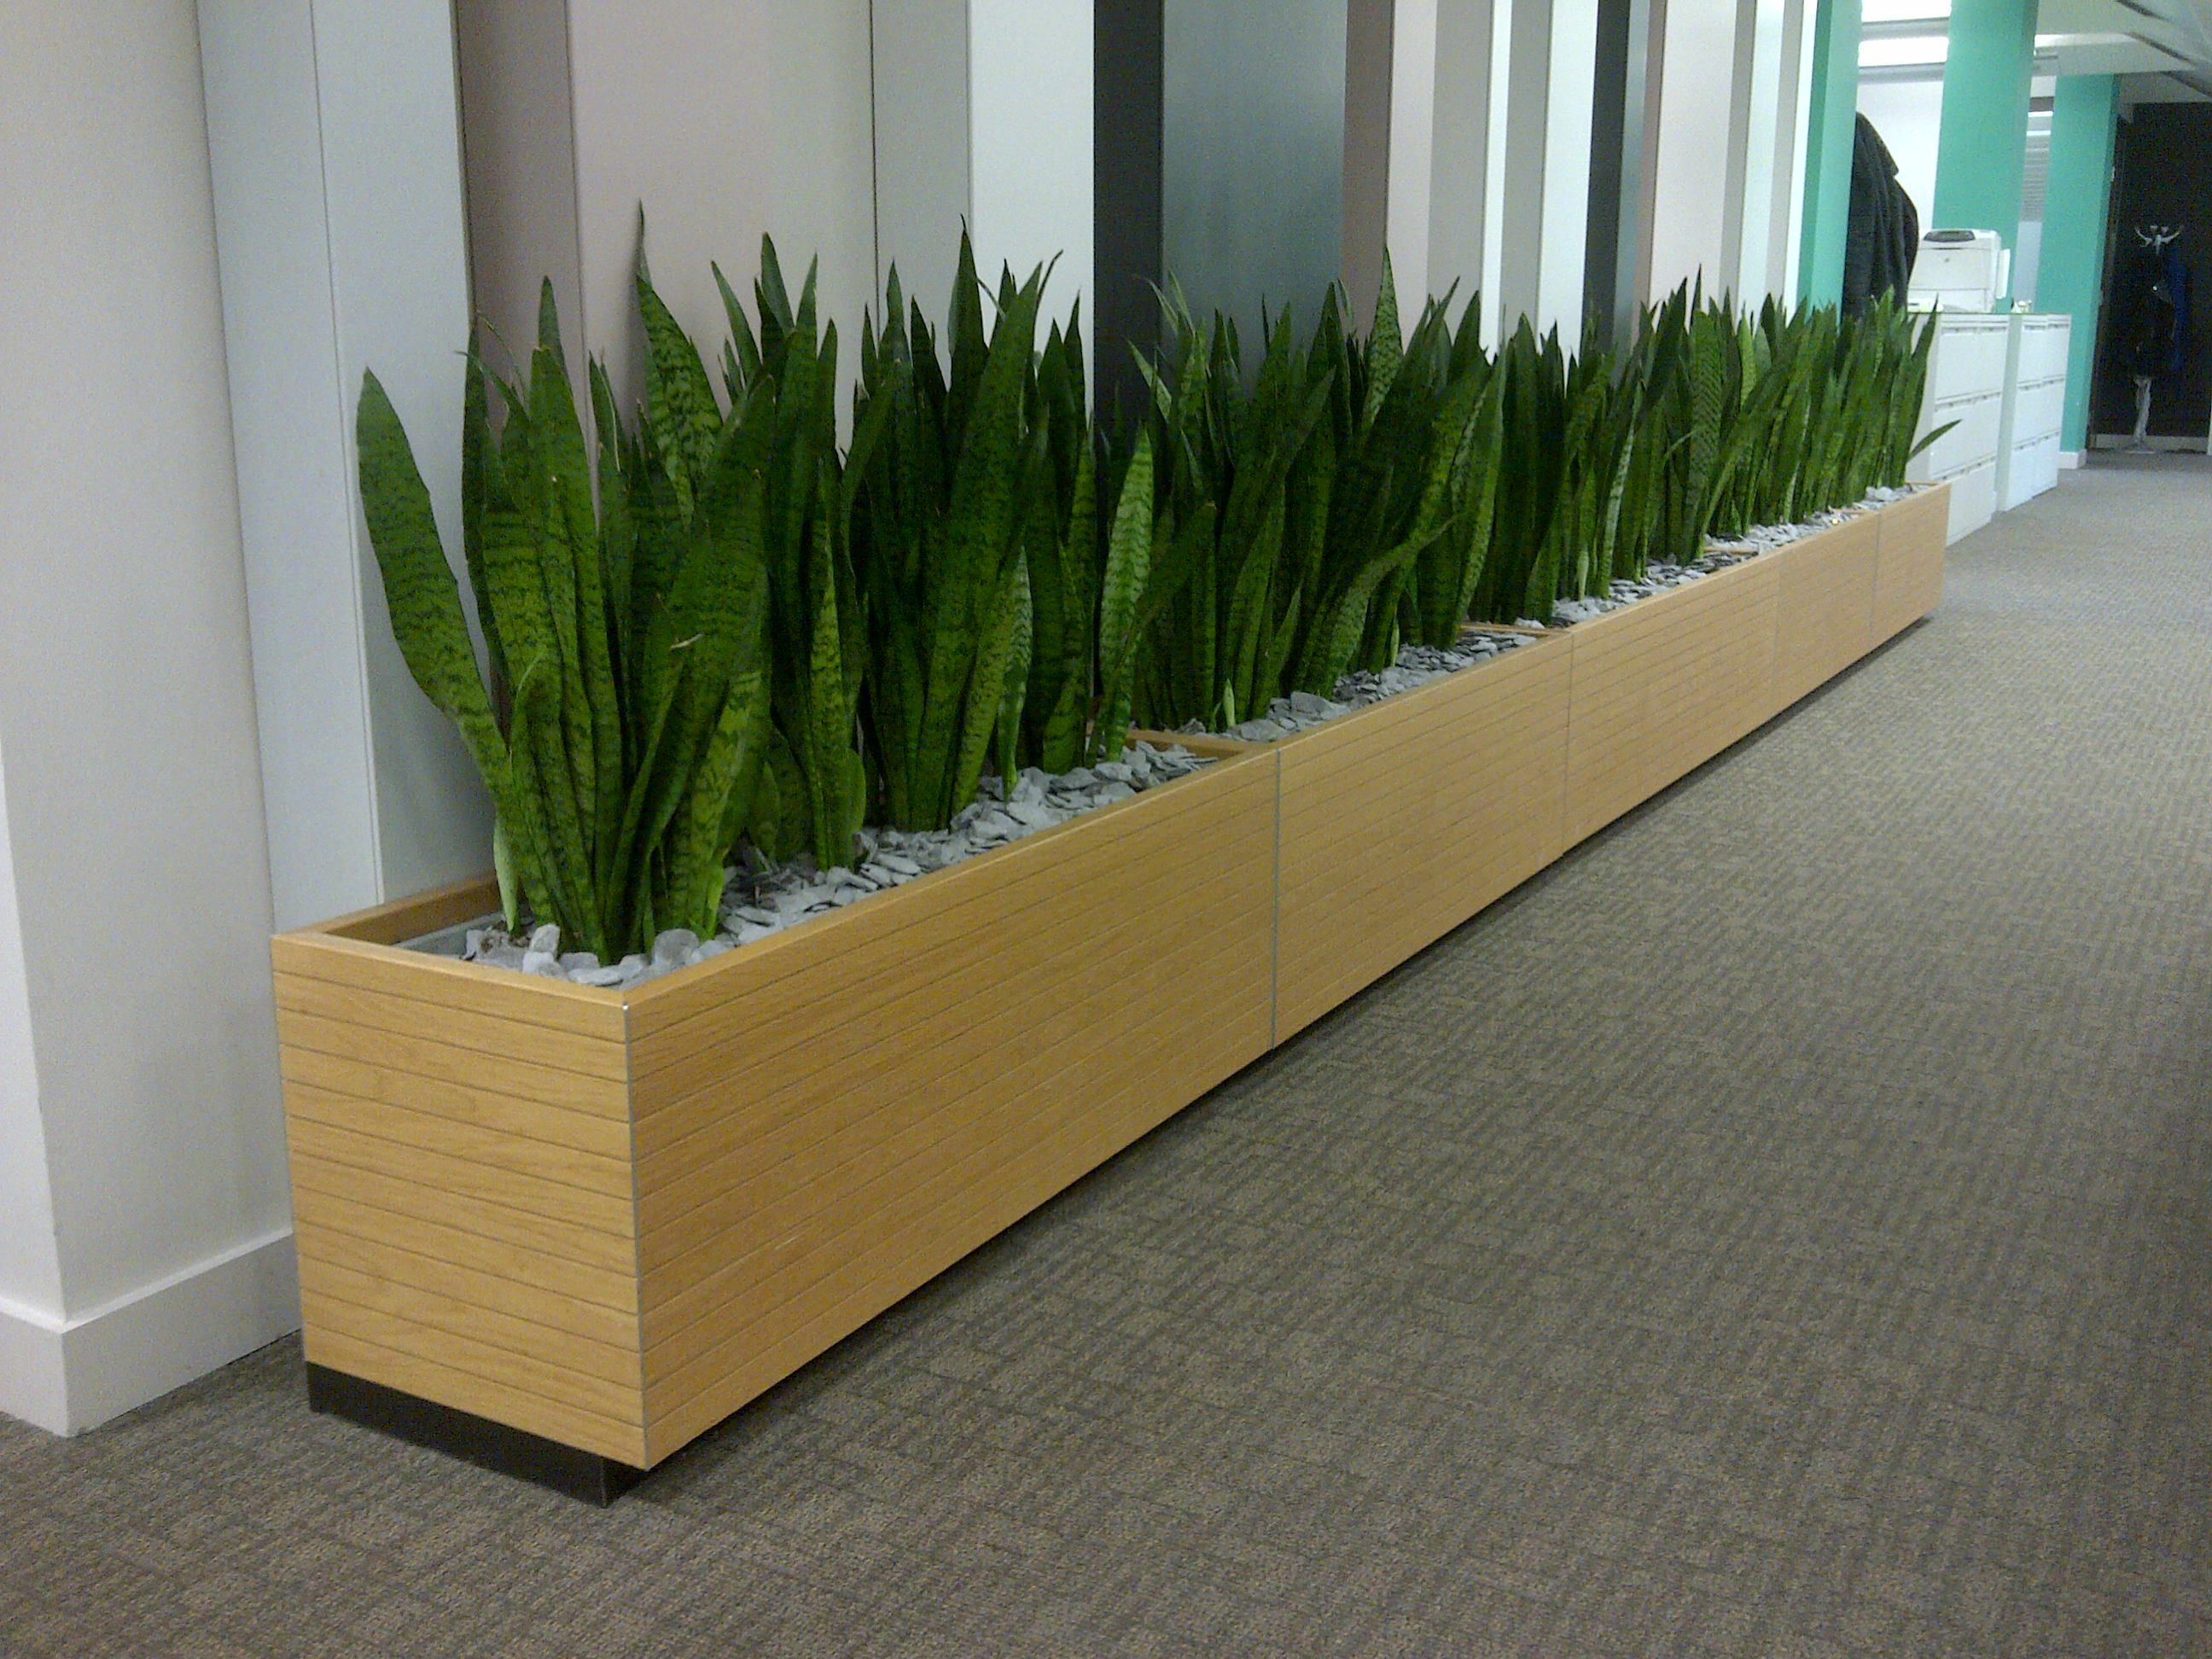 Floor troughs with Sansevieria bring high density planting